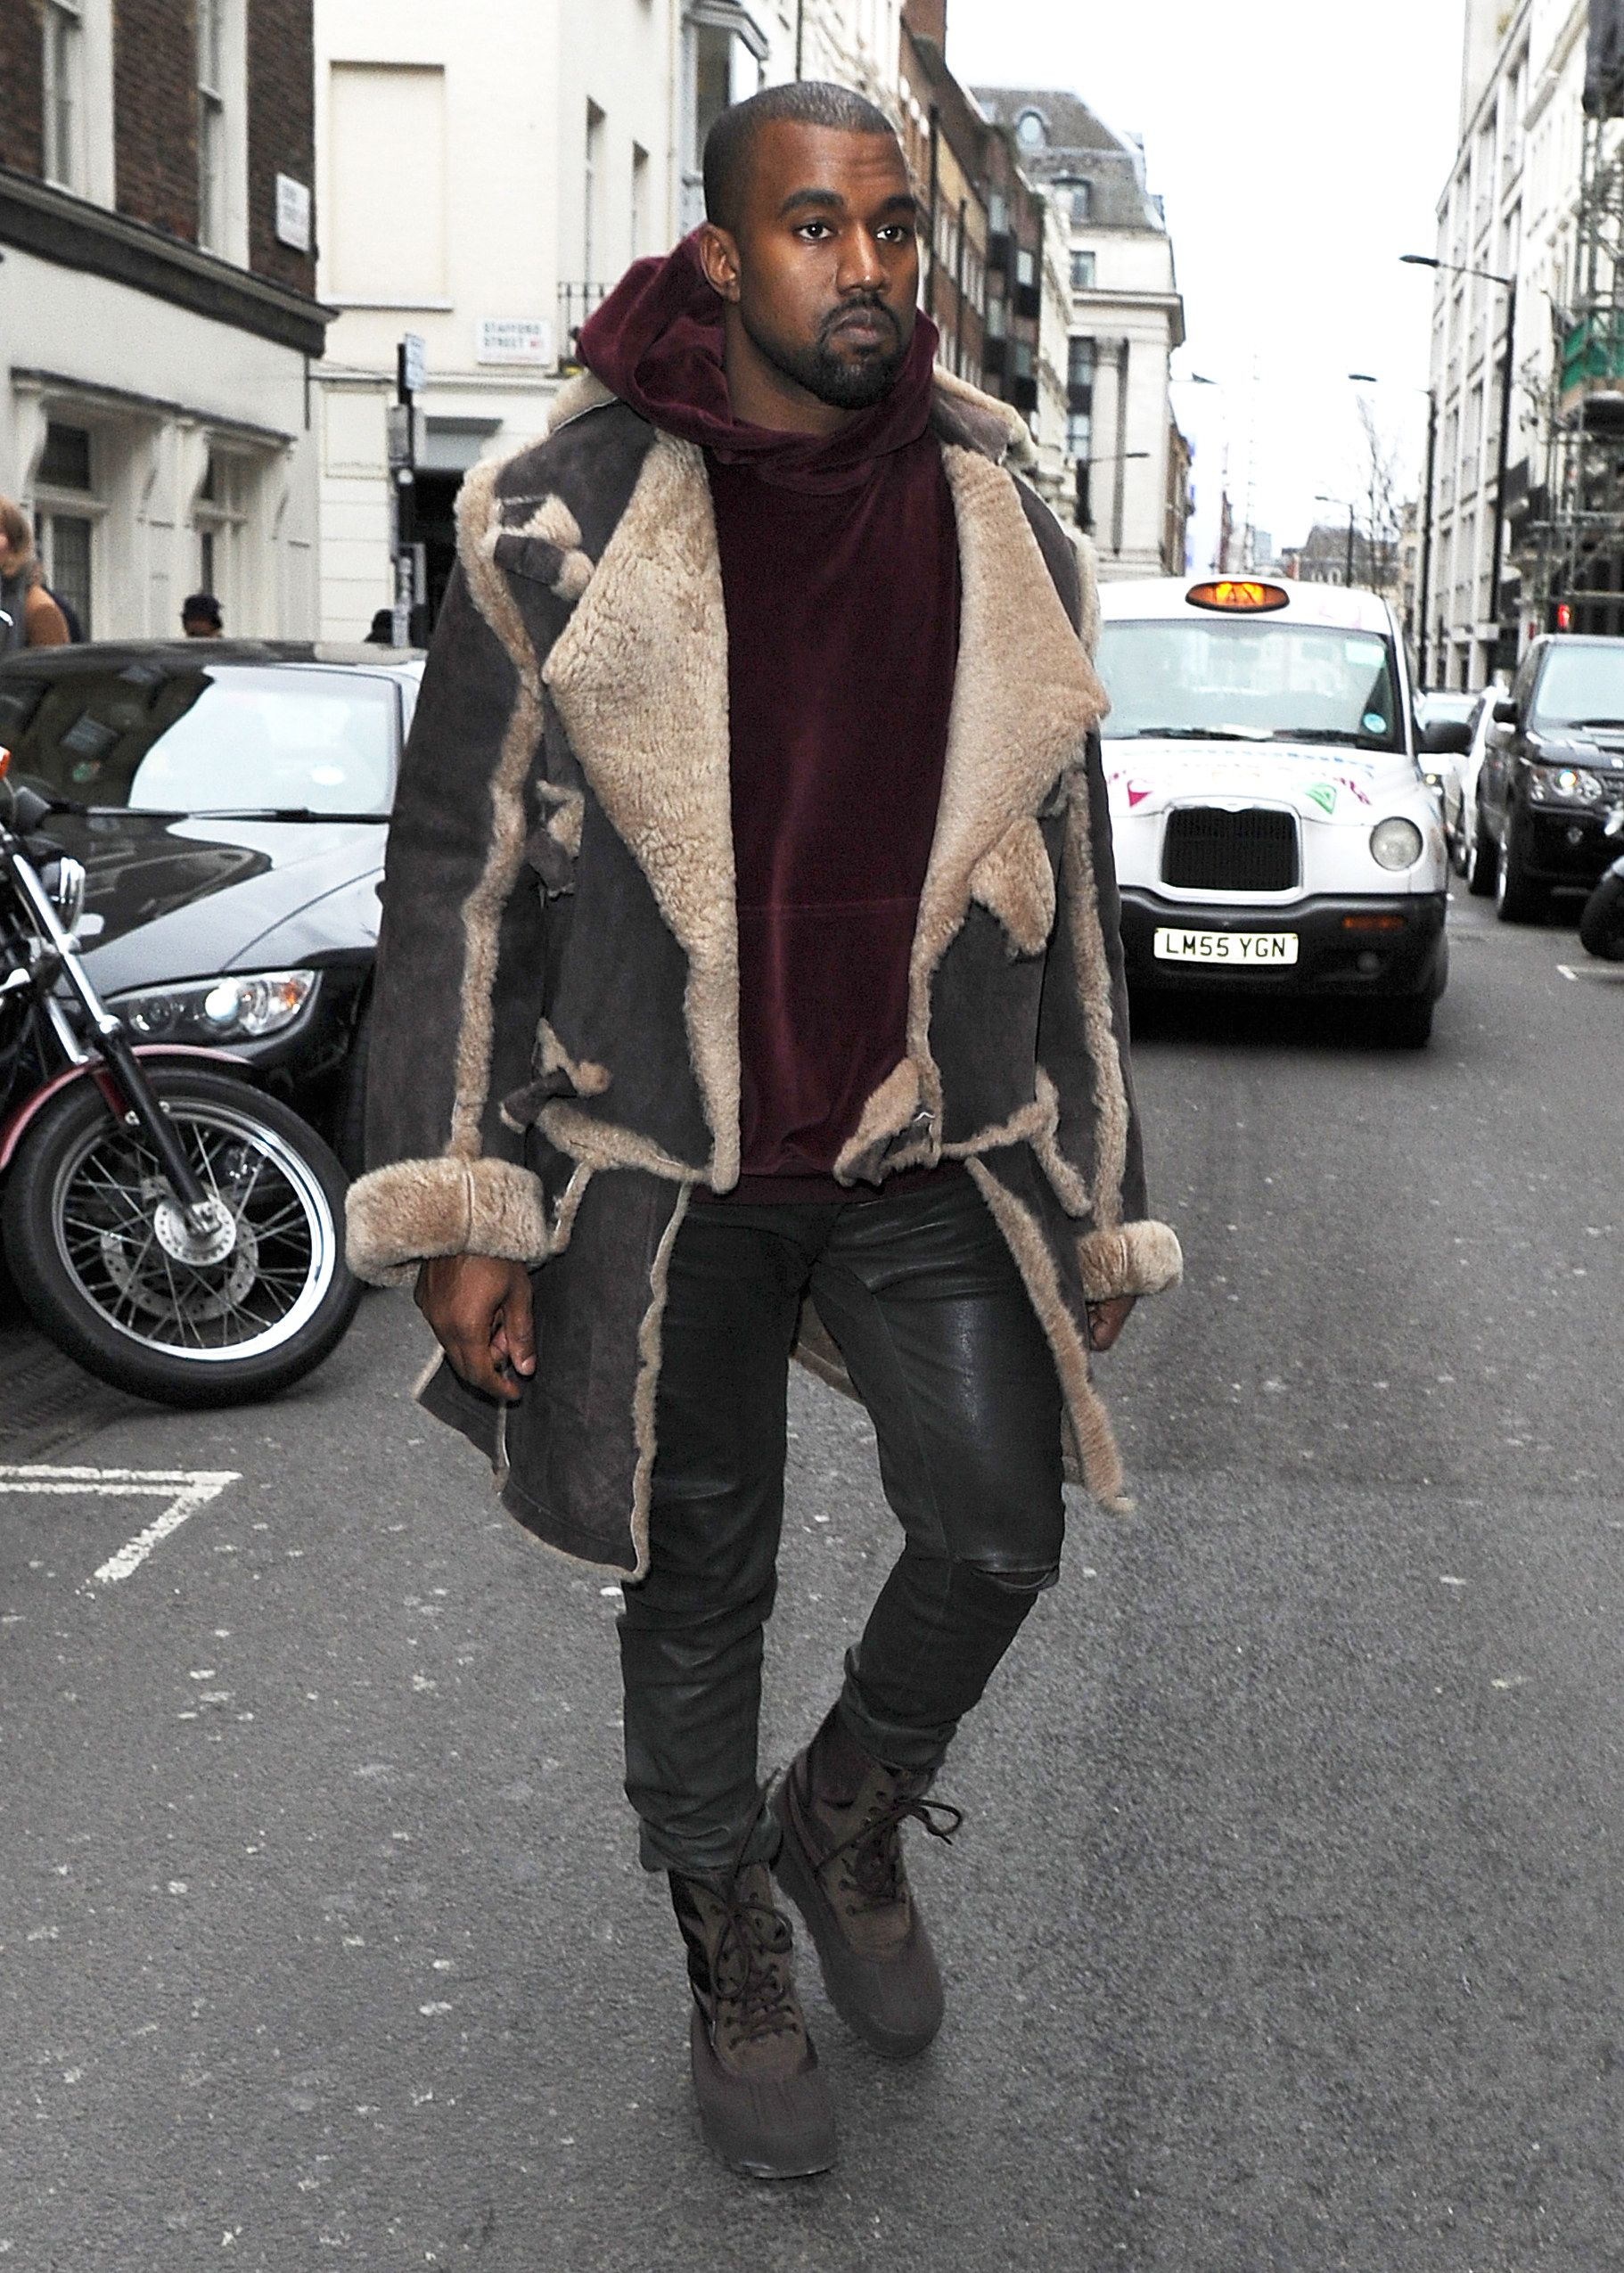 Kanye West Style 2015 02 22 15 Jpg 1822 2550 Kanye West Style Kanye West Outfits Kanye West